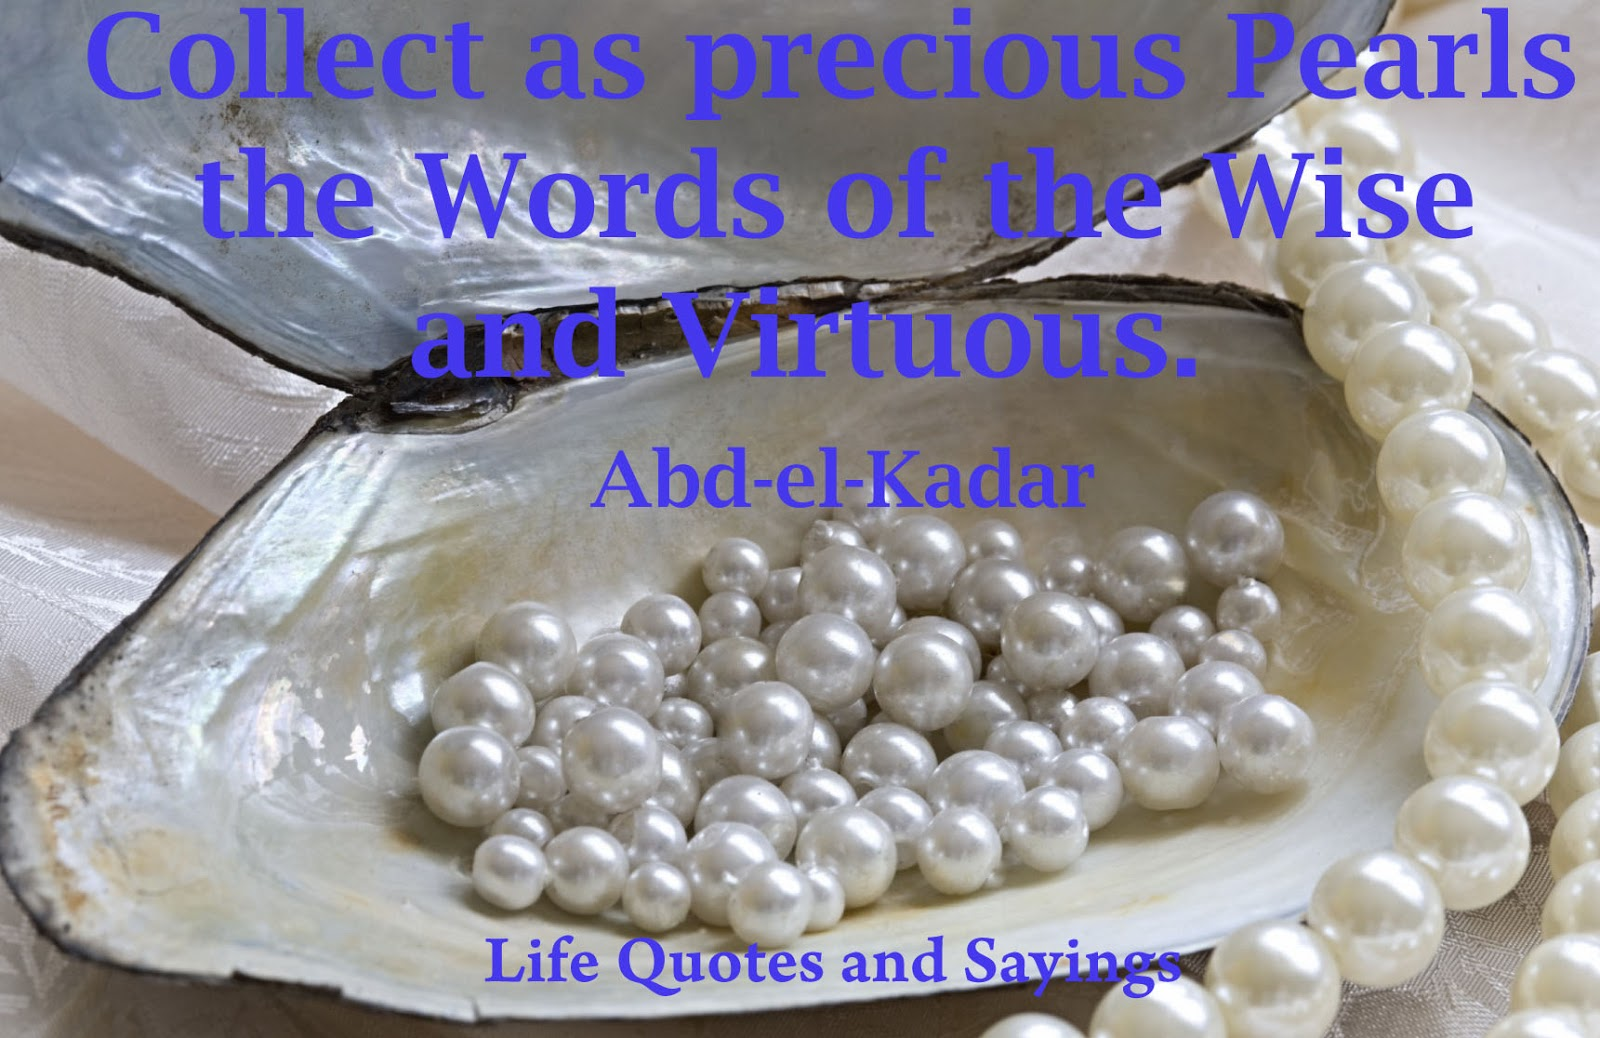 Life Is Precious Quotes Life Quotes And Sayings Collect As Precious Pearls The Words Of